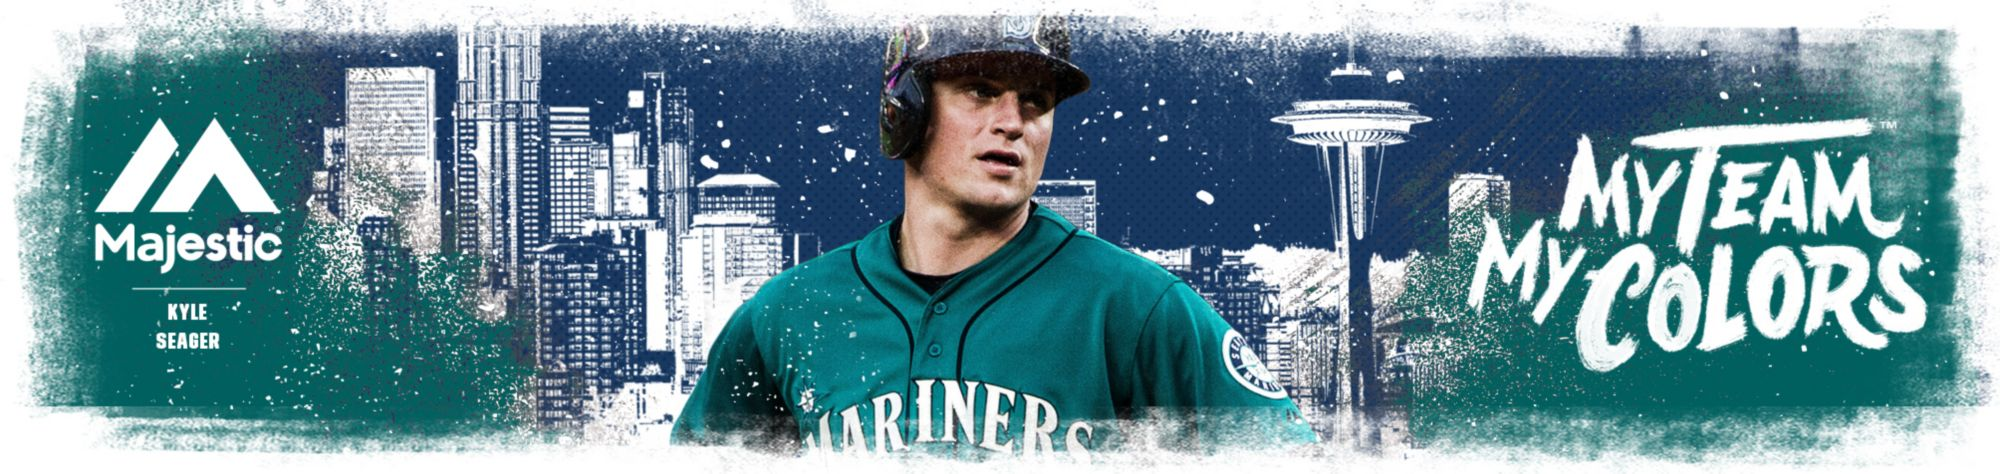 Seattle Mariners Apparel & Gear